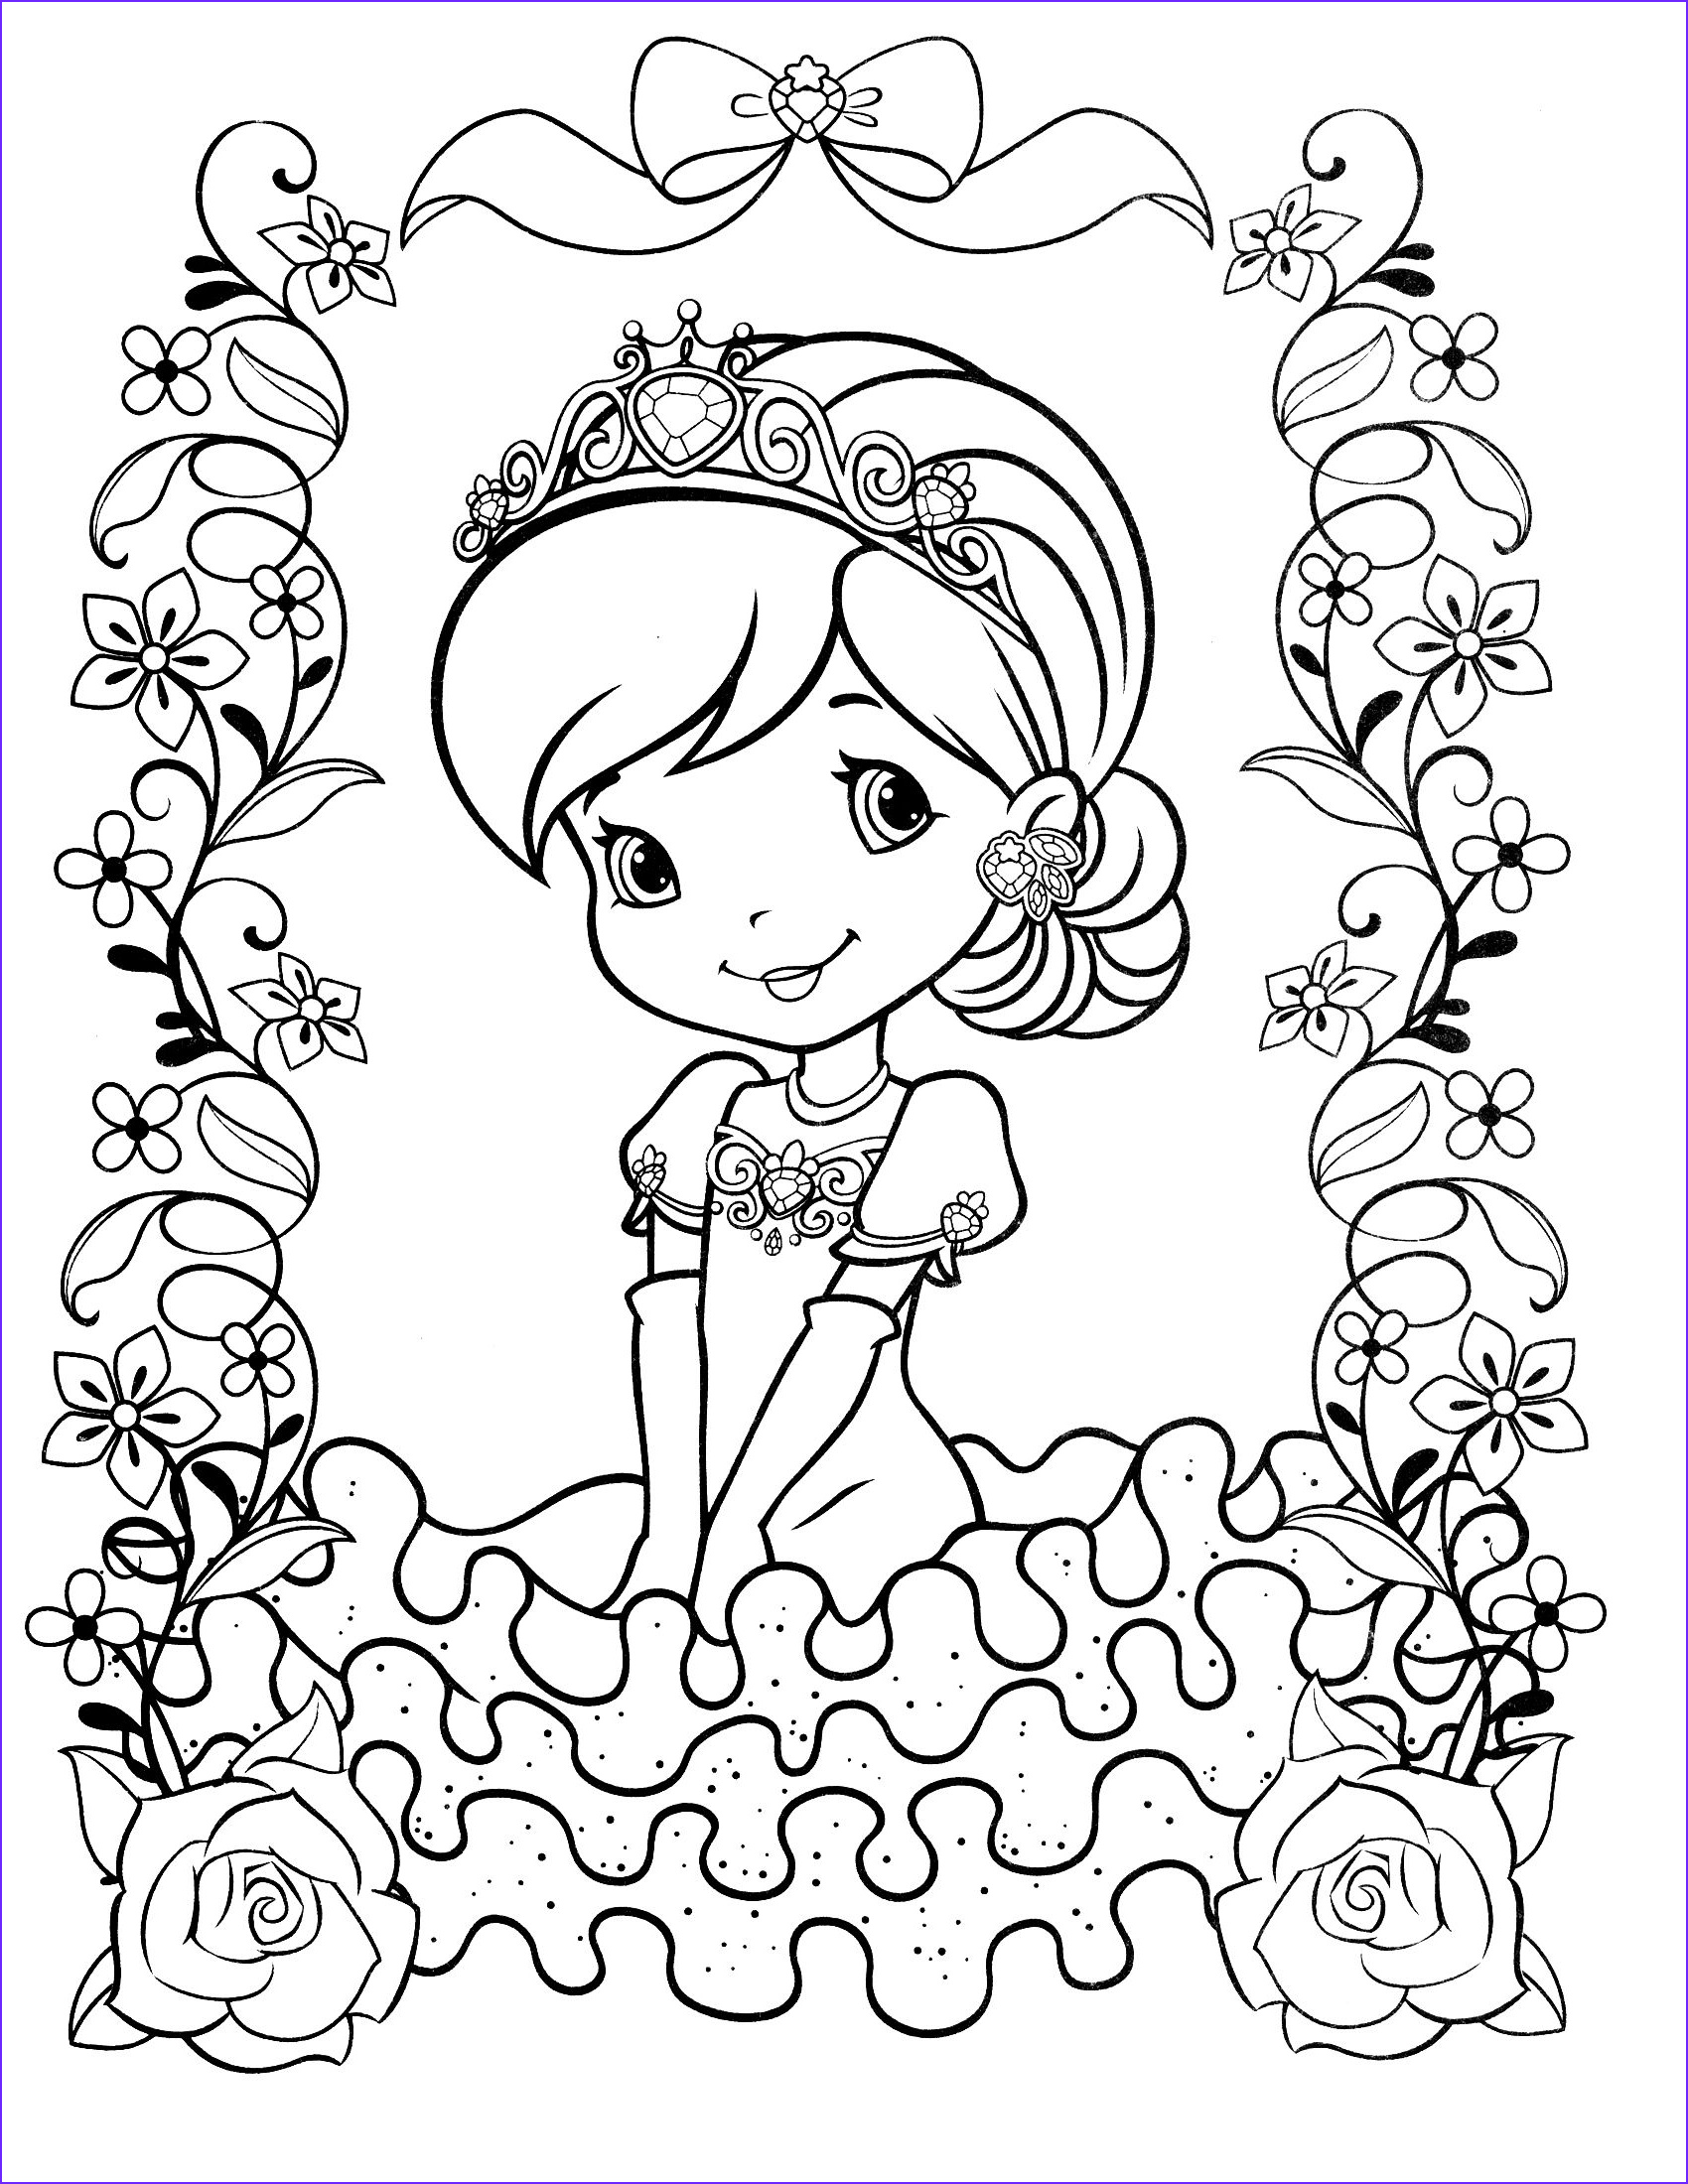 Strawberry Shortcake Coloring Page Cool Image Strawberry Shortcake Coloring Page